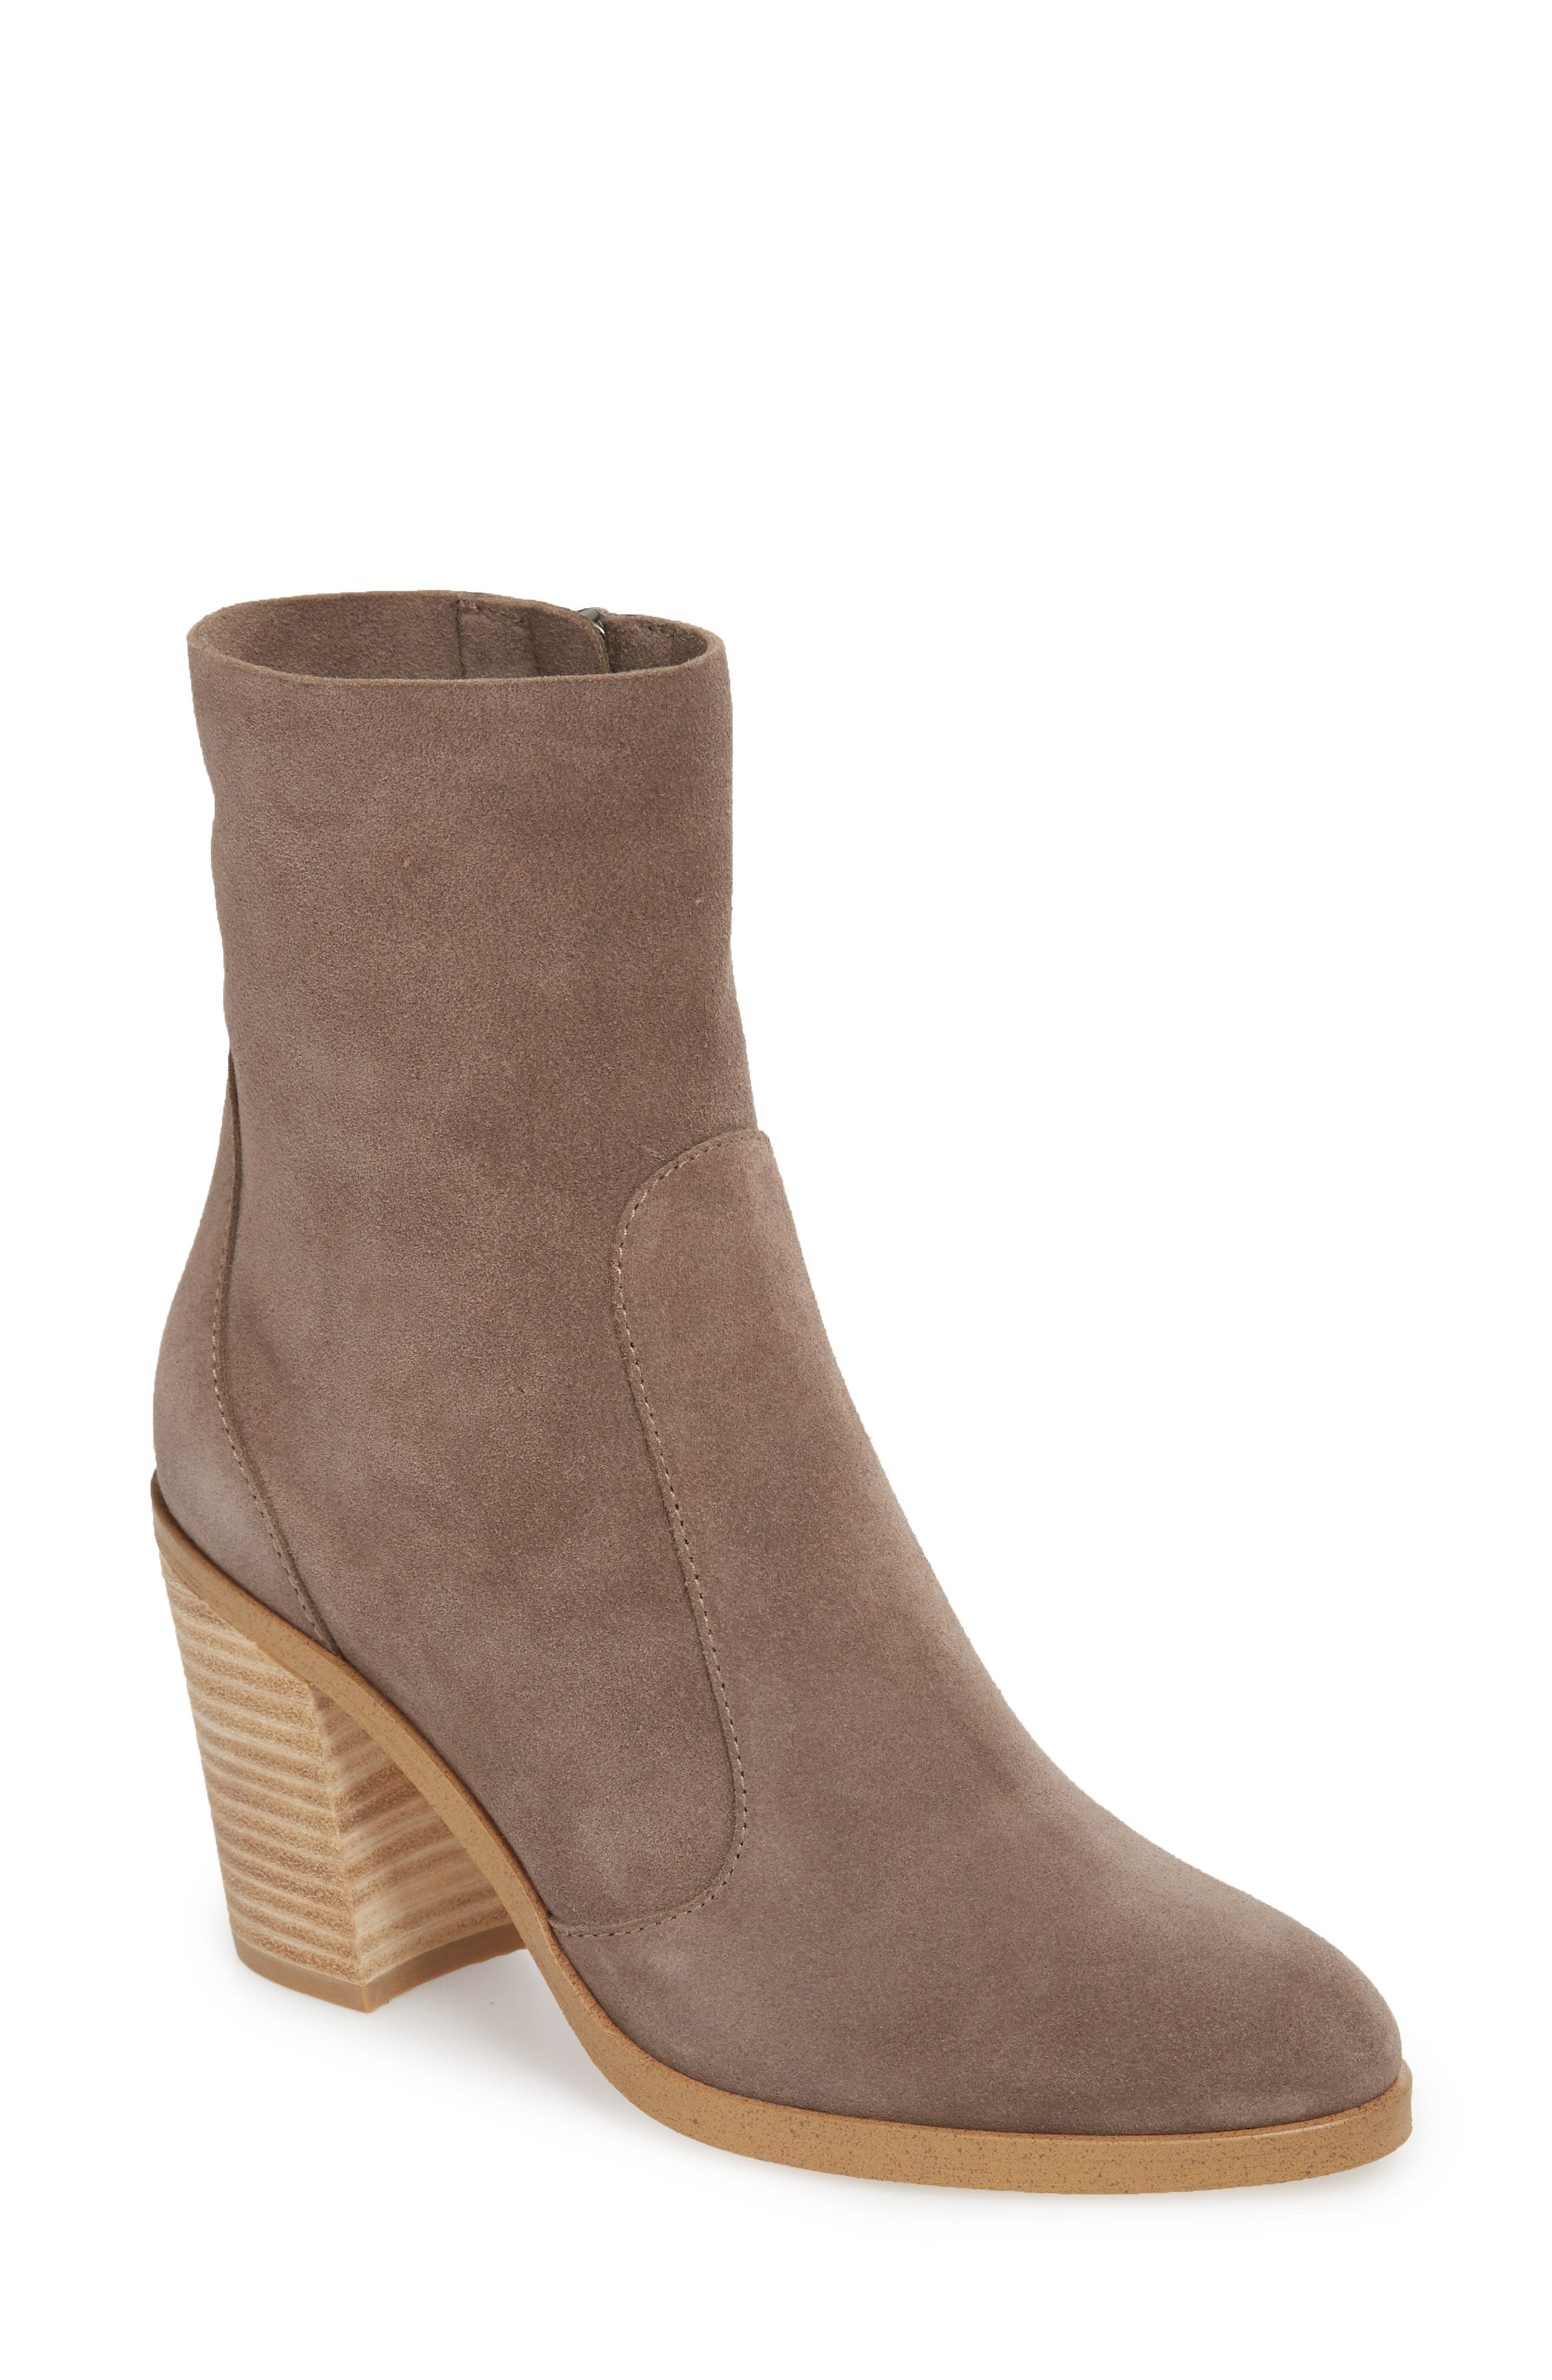 Roselyn II Almond Toe Bootie,                             Main thumbnail 1, color,                             LIGHT CHARCOAL SUEDE